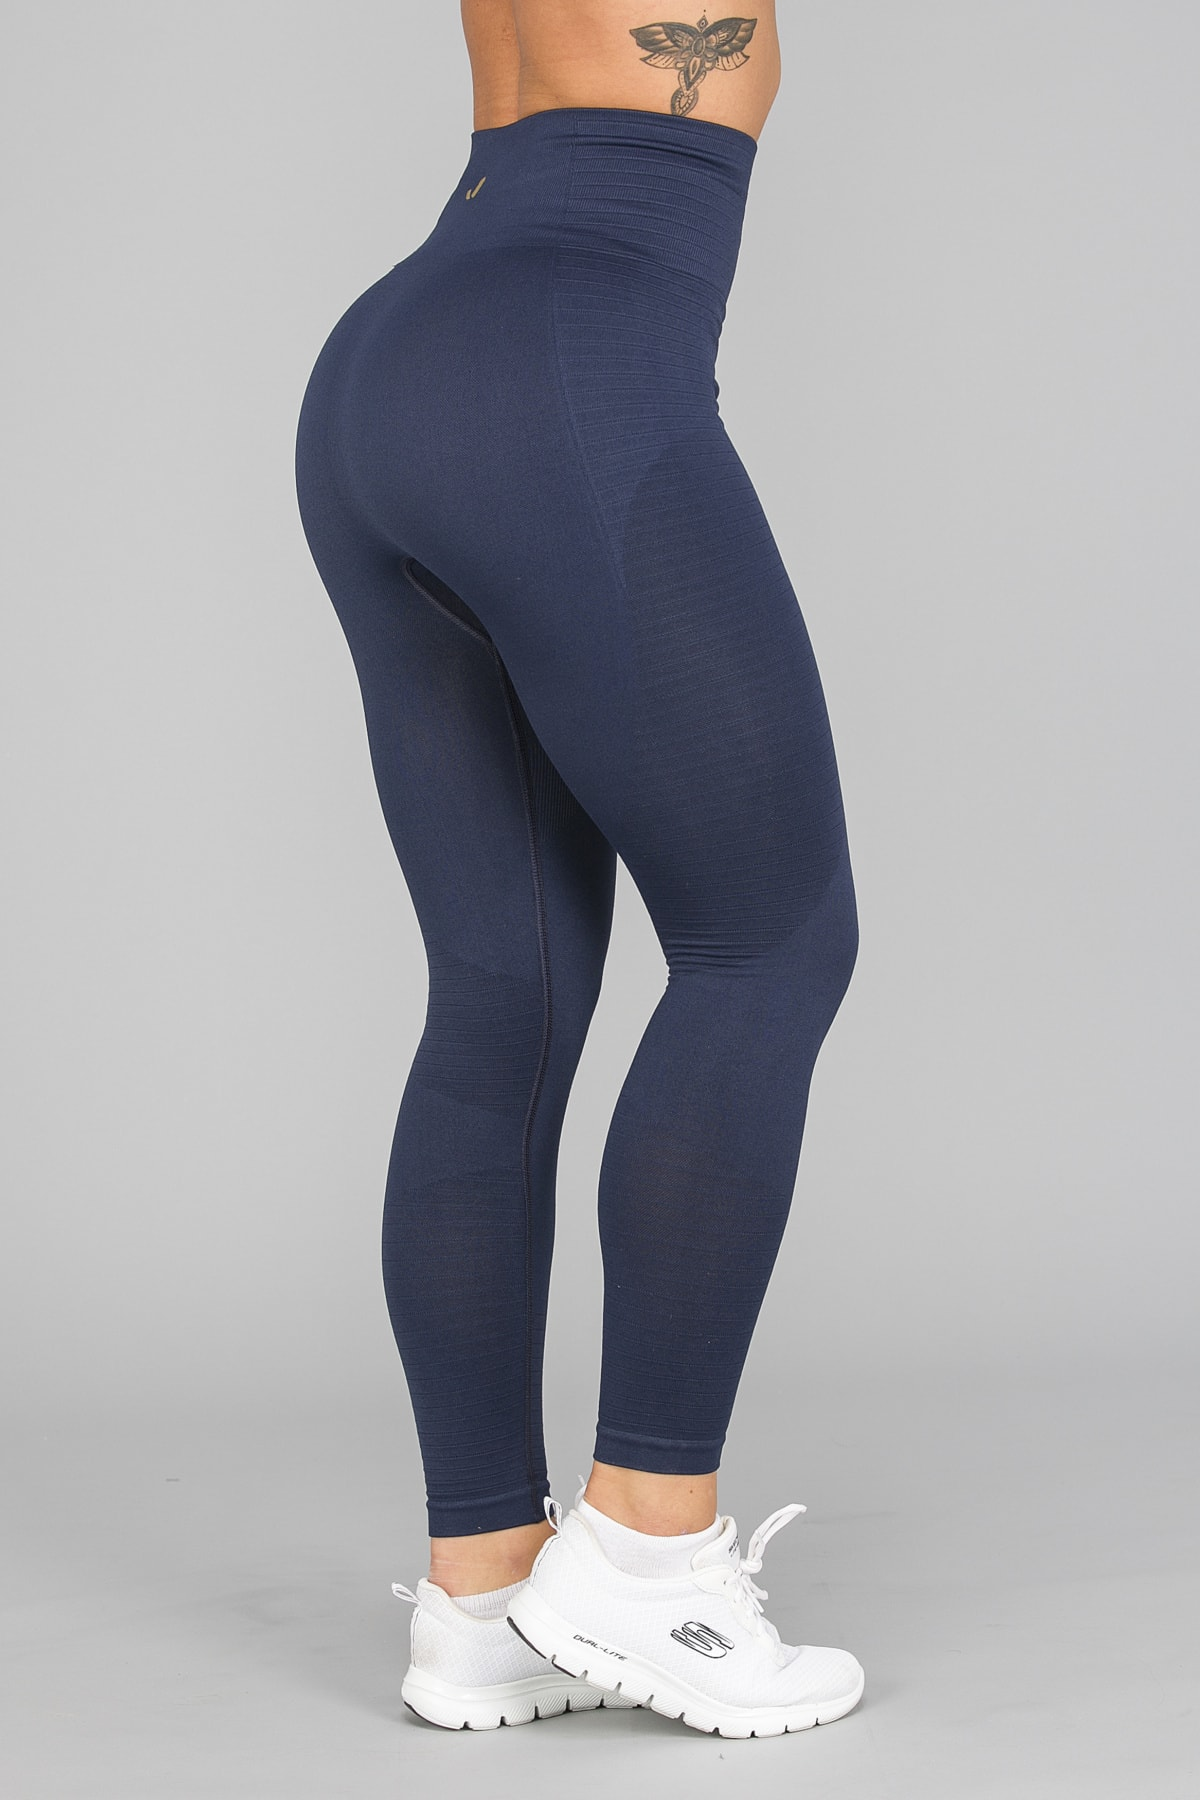 Jerf Gela 2.0 tights Navy Blue15